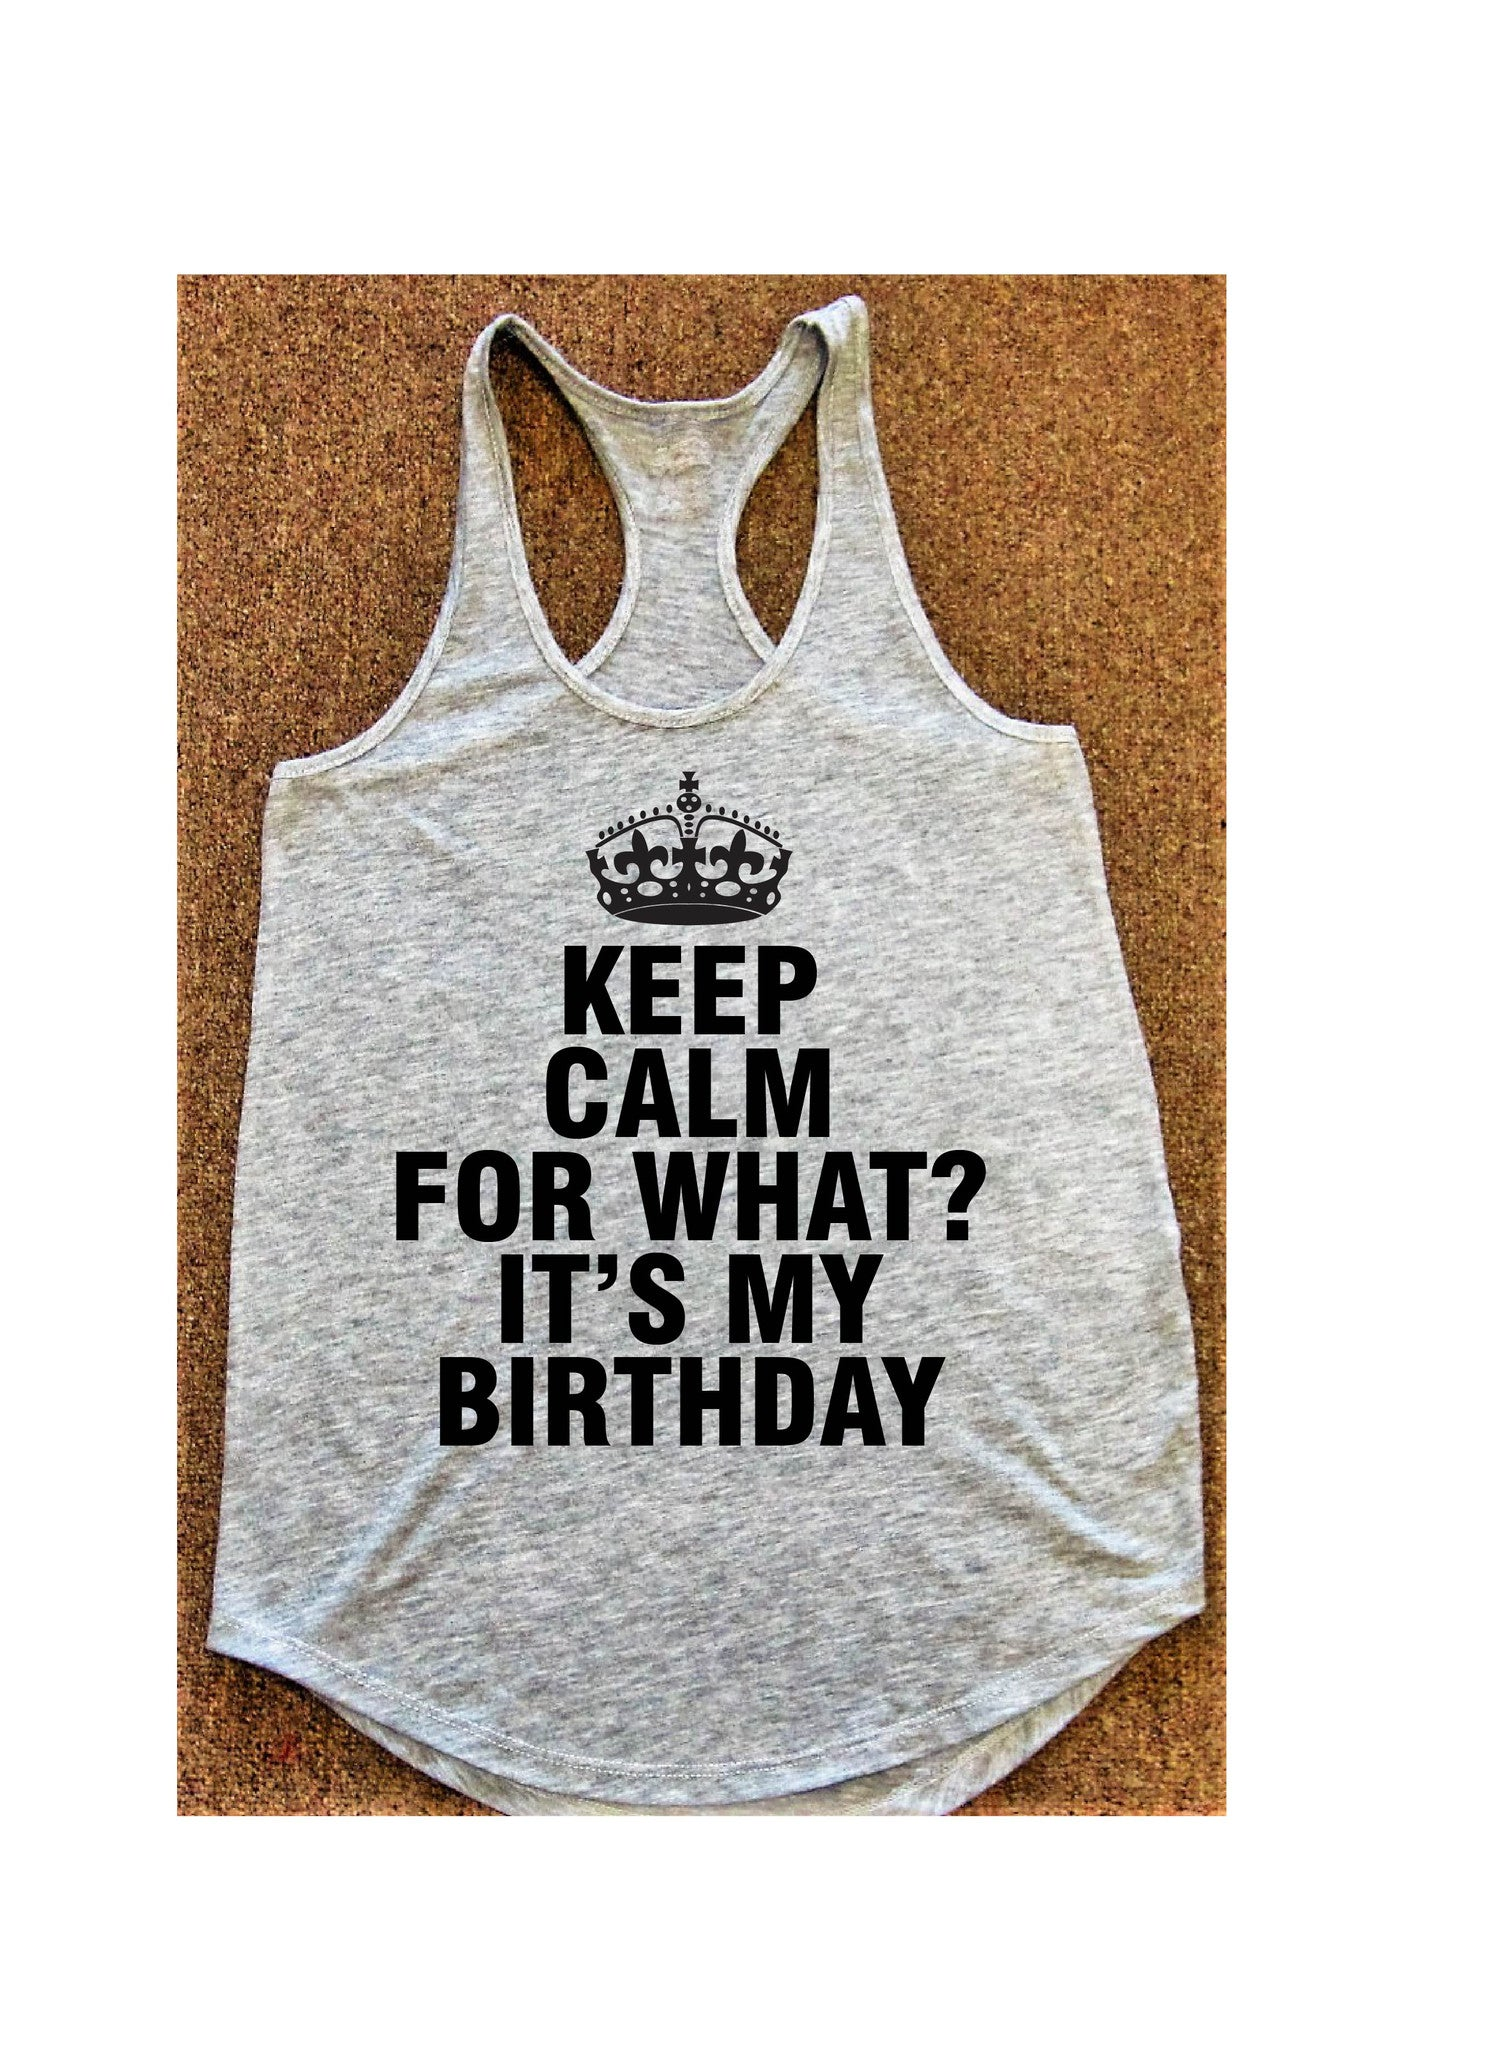 Keep Calm for What? It's My Birthday Tank Top for Women